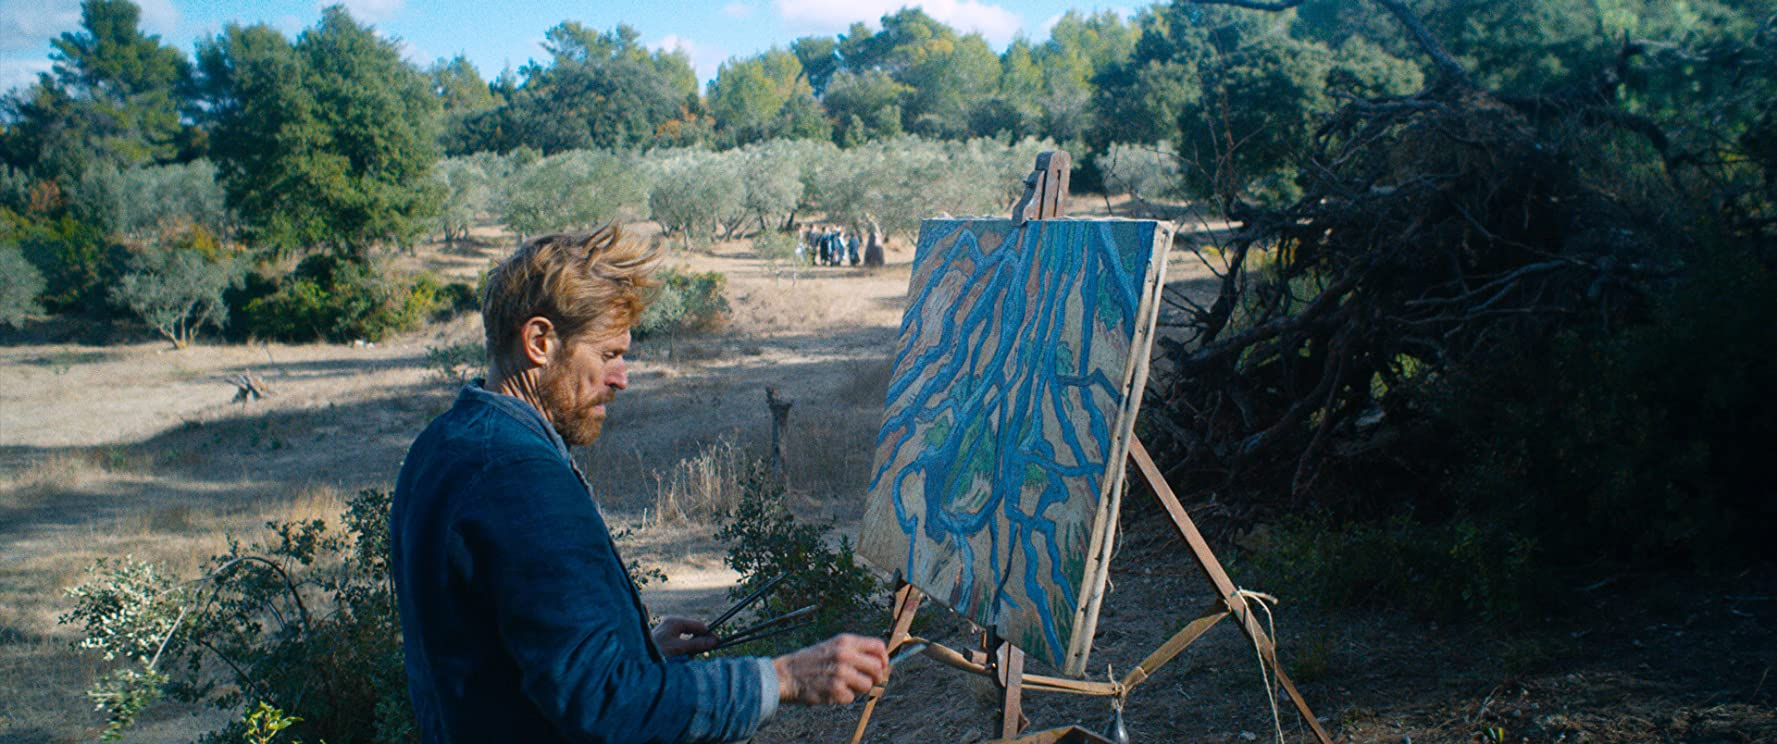 Willem Dafoe in At Eternity's Gate (2018)